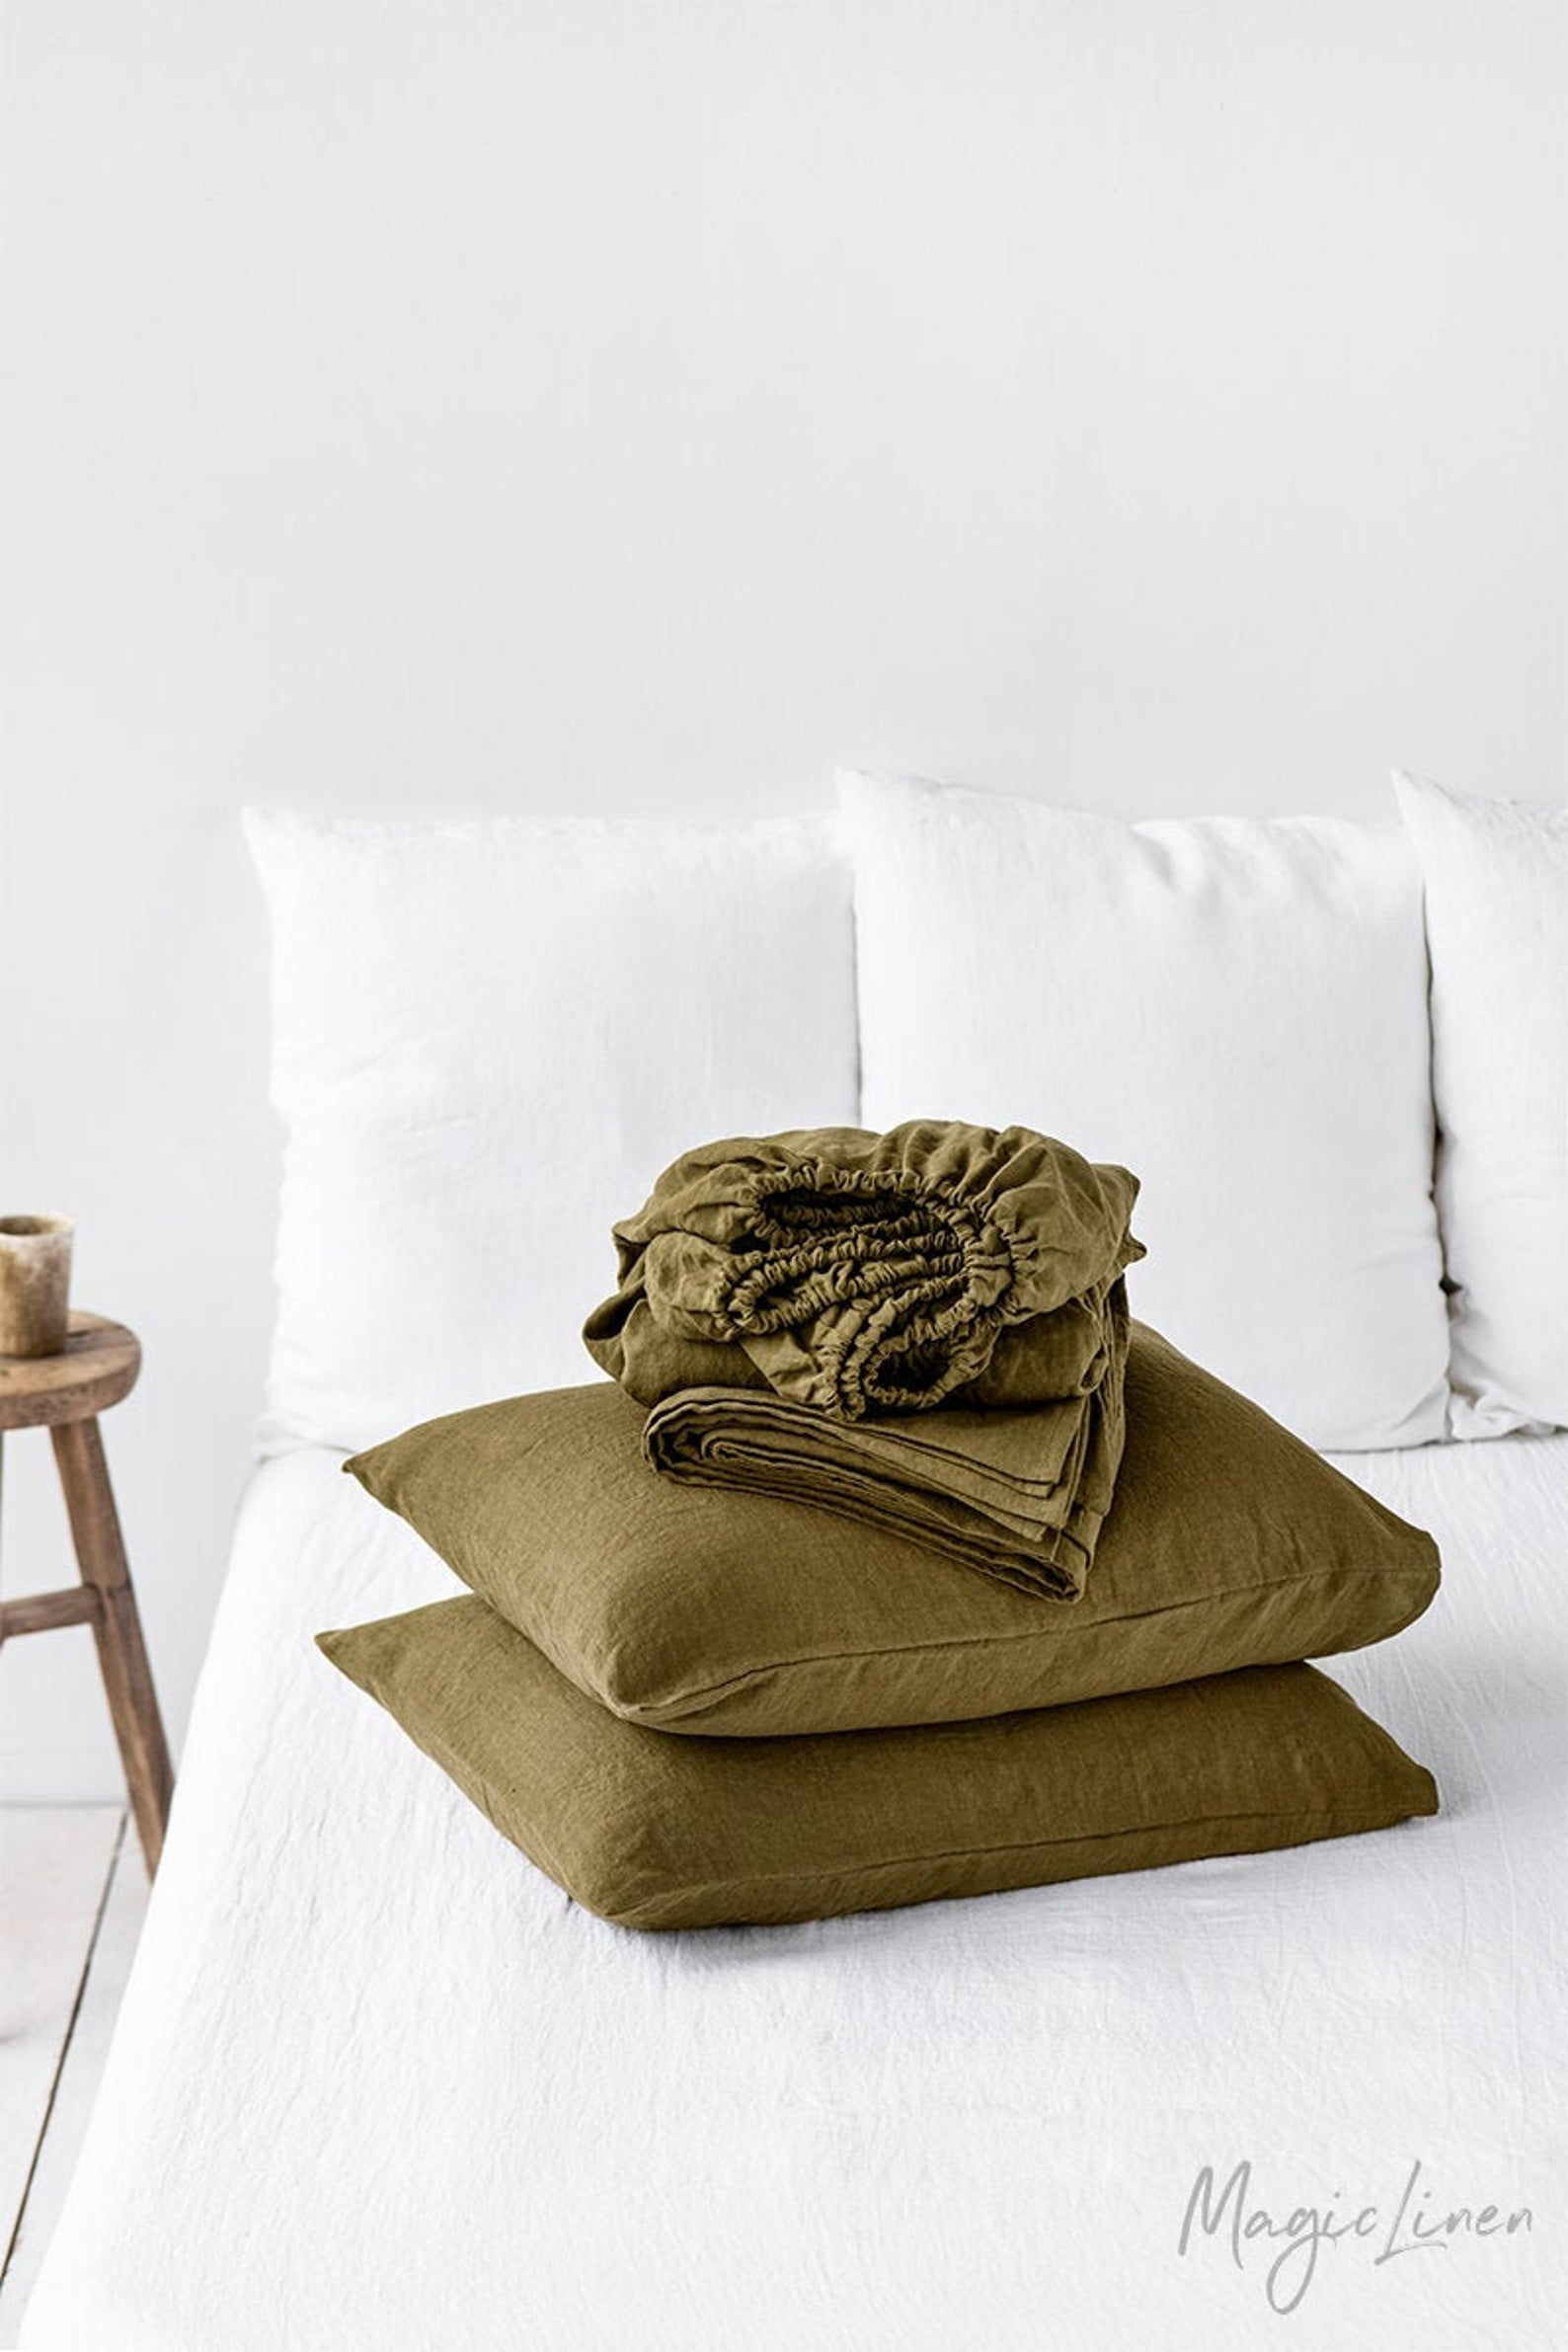 Olive - Linen Pillowcase Set - Two Covers with Ribbon Tie